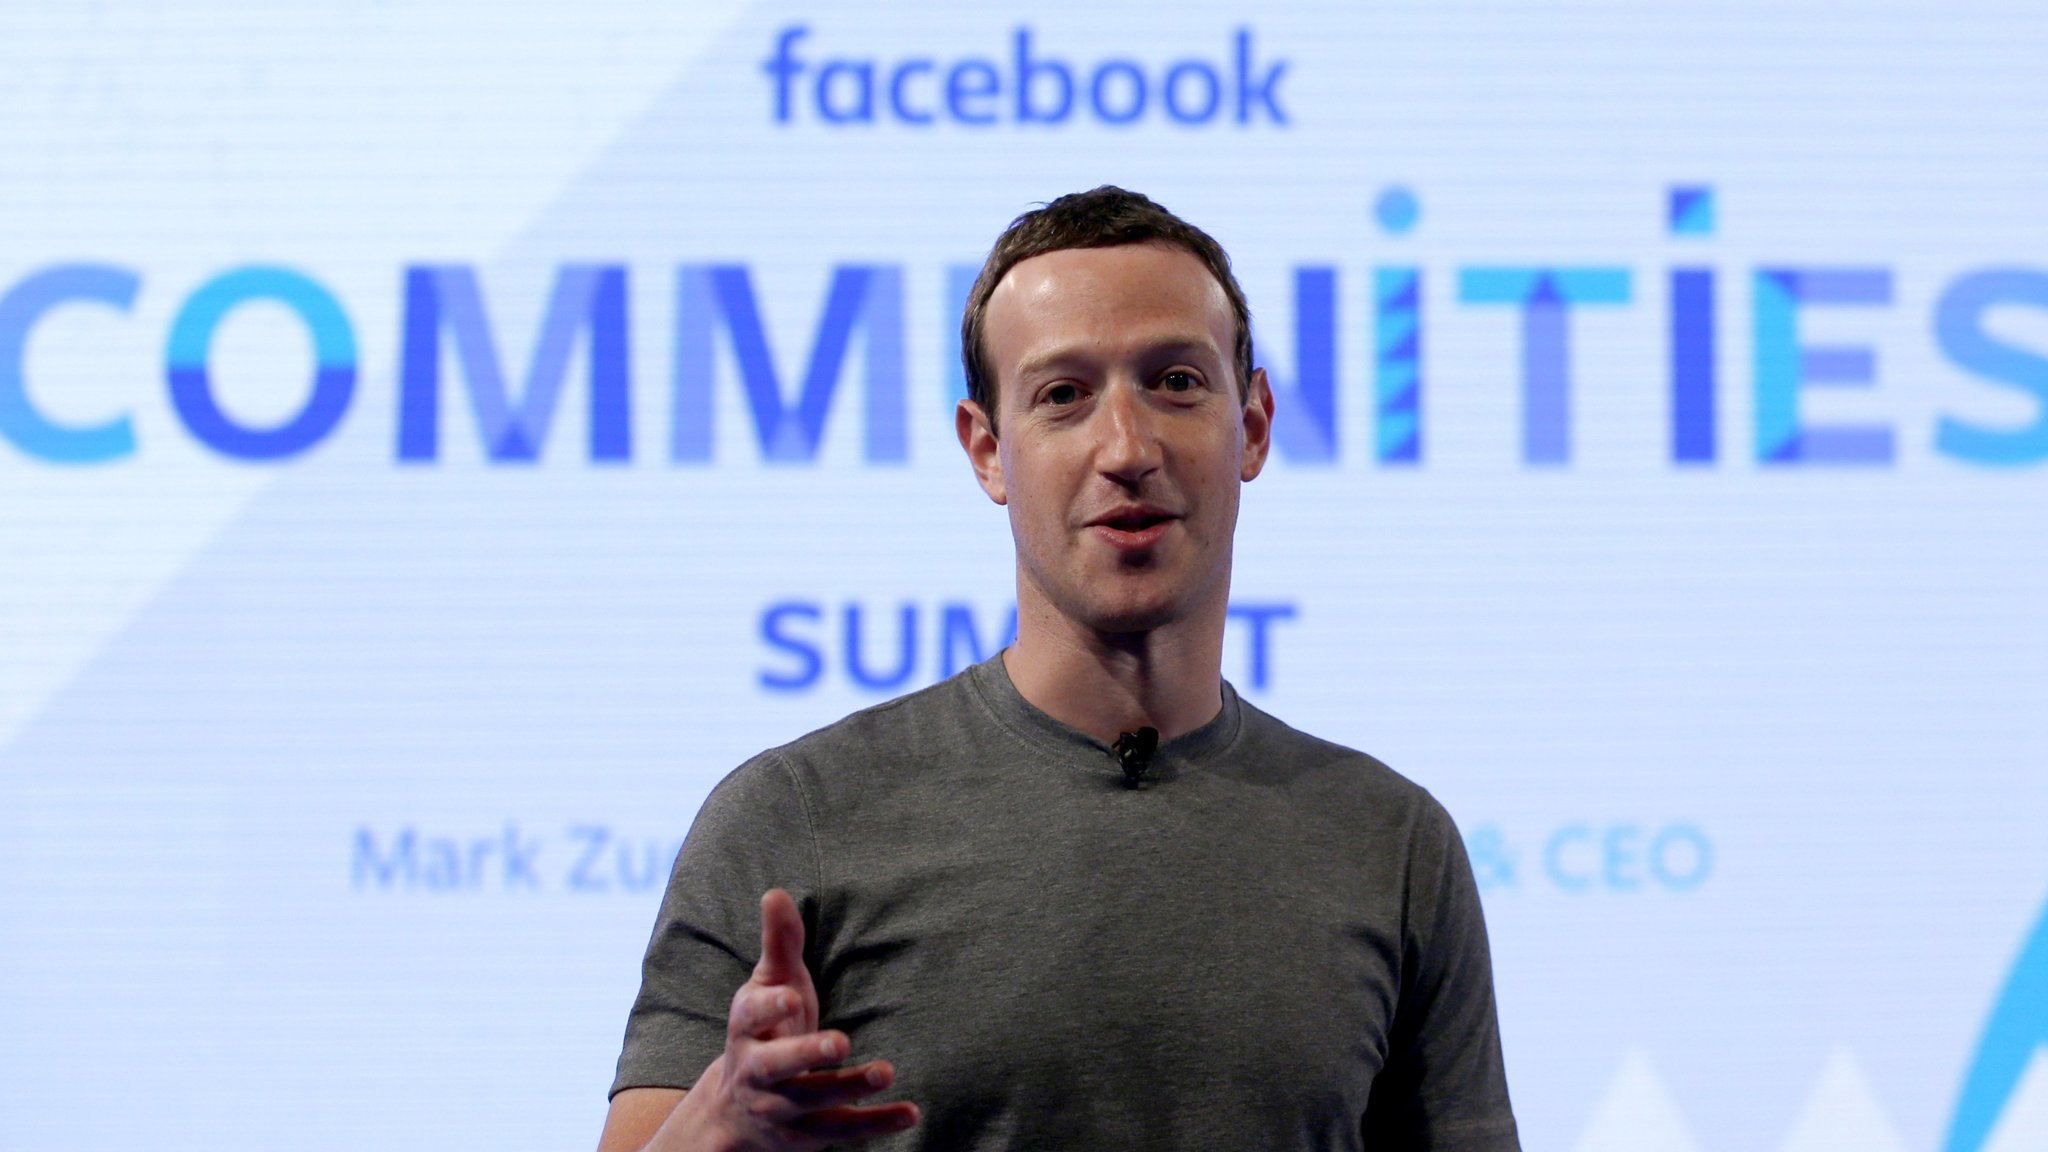 Facebook will ask users to rank trusted news sources